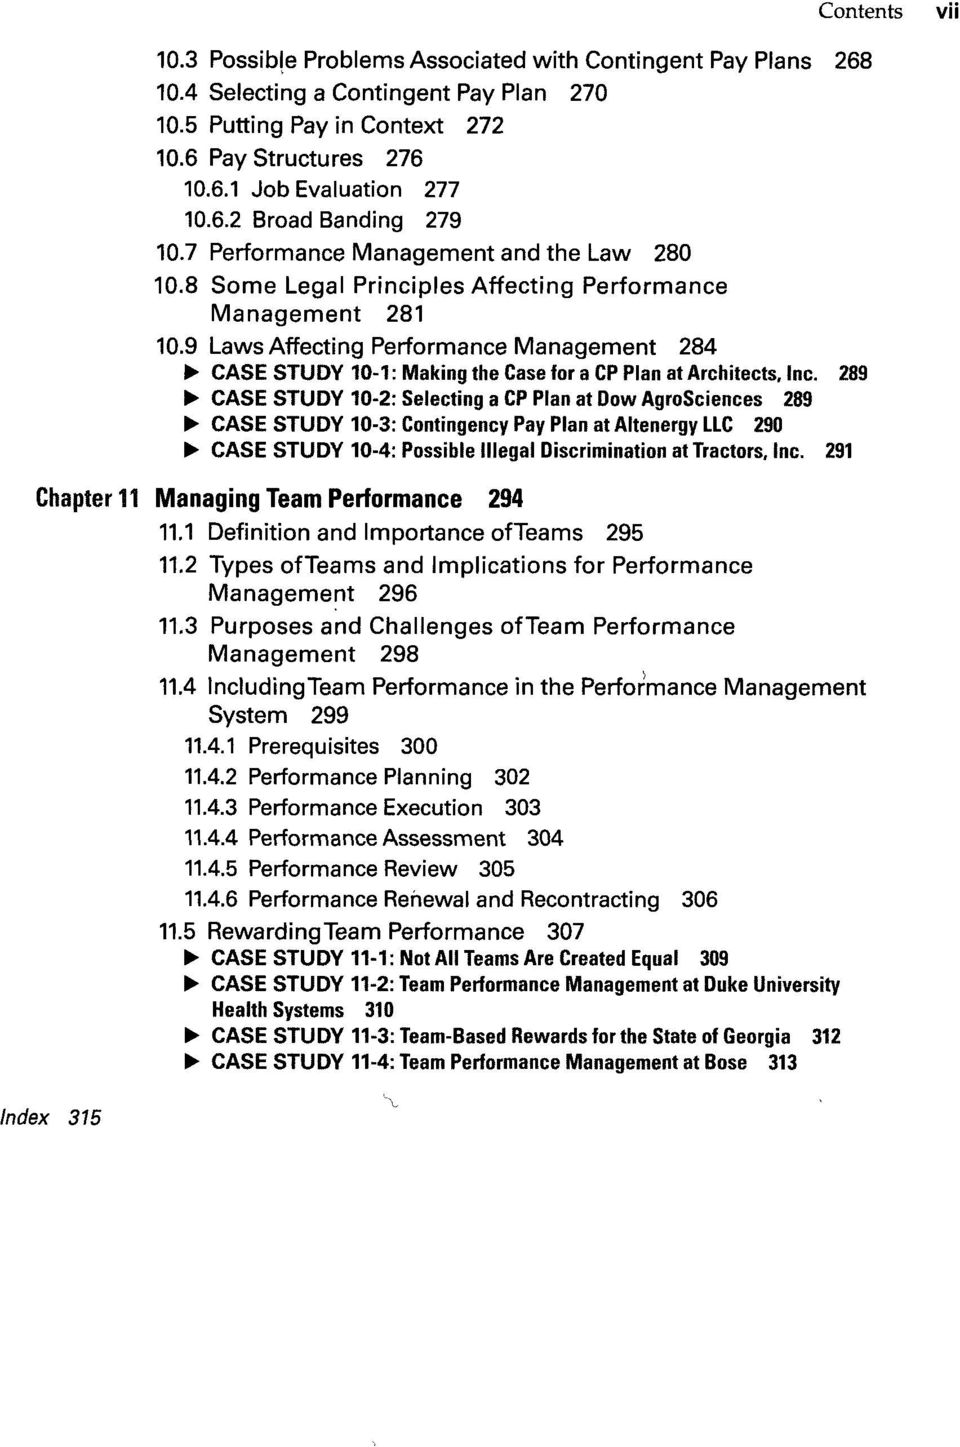 9 Laws Affecting Performance Management 284 CASE STUDY 10-1: Making the Case for a CP Plan at Architects, Inc.